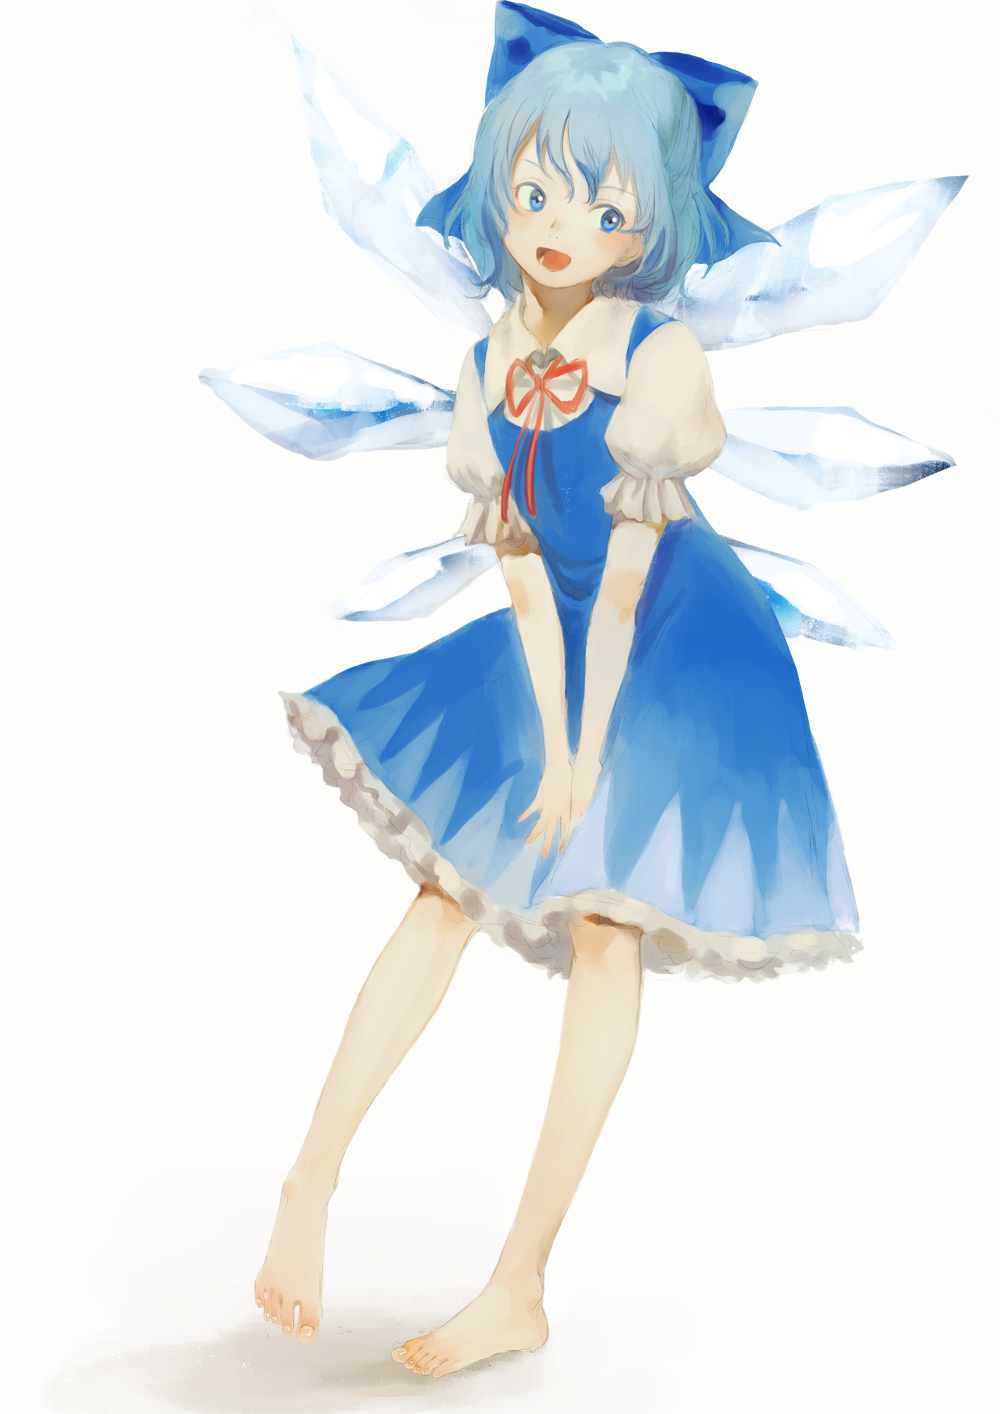 1girl bare_legs blue_bow blue_dress blue_eyes blue_hair blush bow cirno collared_shirt dress dress_tug frilled_dress frills full_body hair_between_eyes hair_bow highres ice ice_wings kagari_(kgr_000) leaning_to_the_side looking_to_the_side neck_ribbon open_mouth puffy_short_sleeves puffy_sleeves red_ribbon ribbon shiny shiny_hair shirt short_hair short_sleeves sidelocks simple_background solo standing standing_on_one_leg touhou white_background white_shirt wing_collar wings